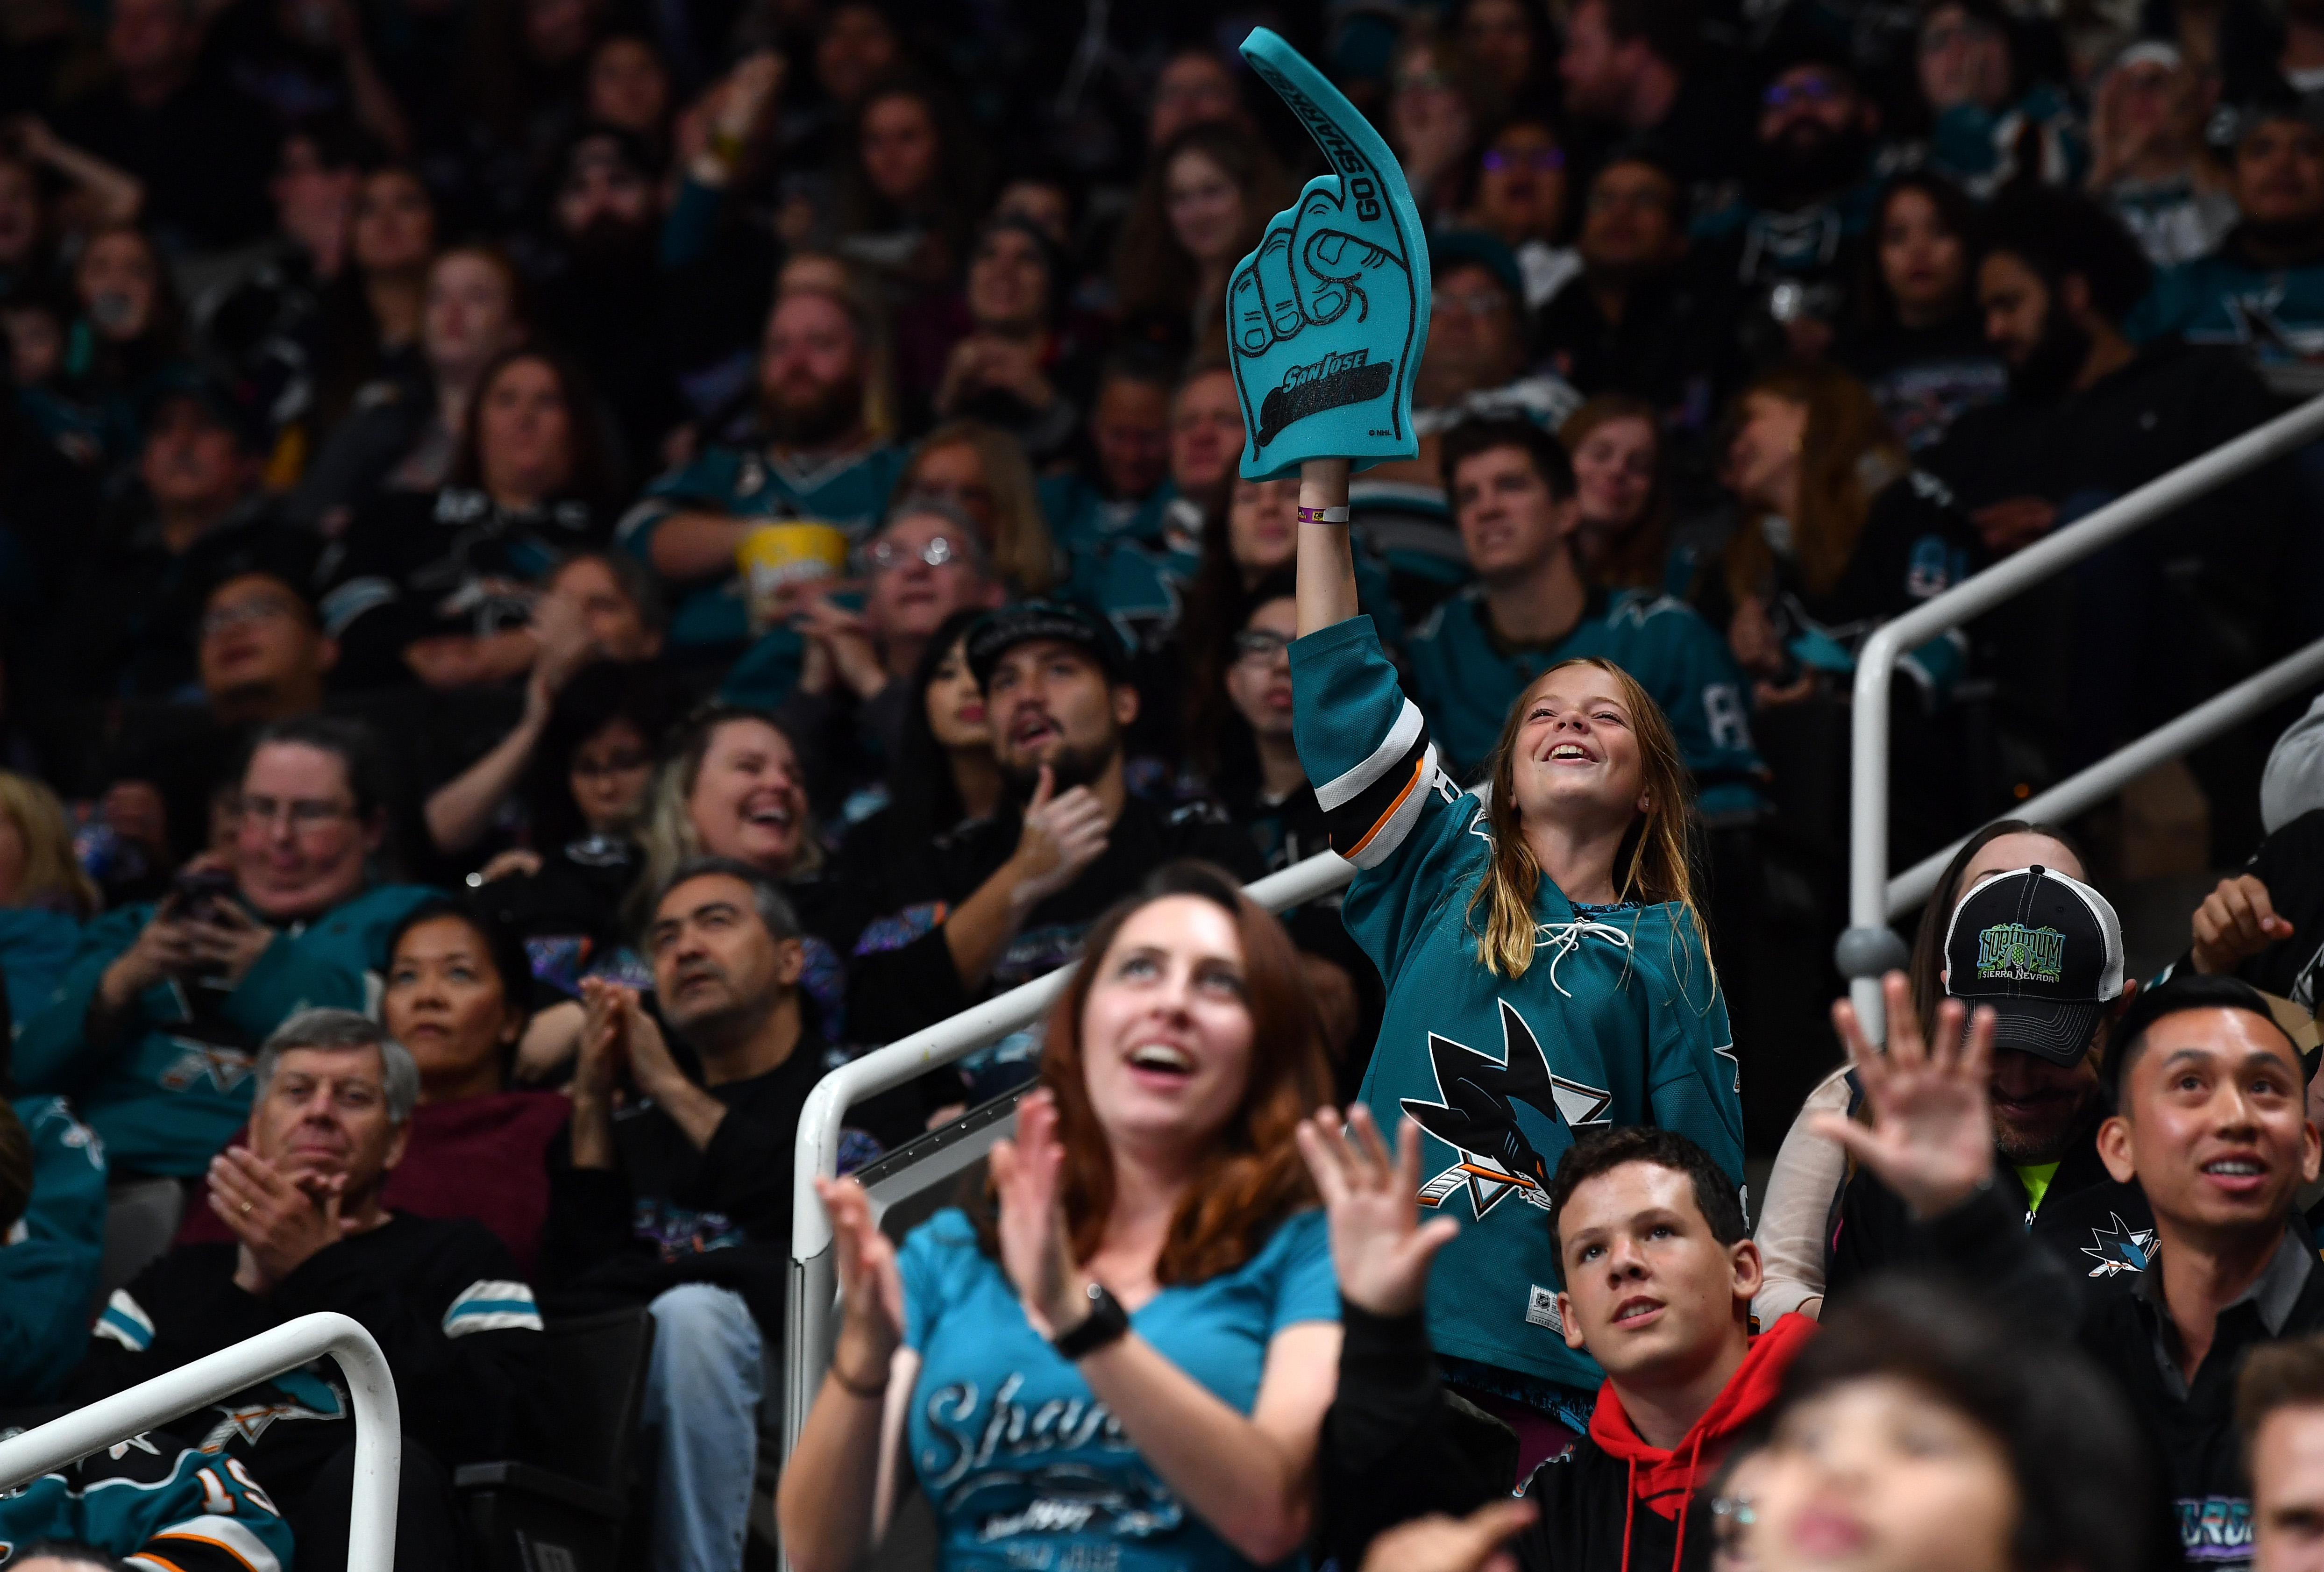 A fan cheers as the San Jose Sharks play against the Buffalo Sabres at SAP Center on October 19, 2019 in San Jose, California.